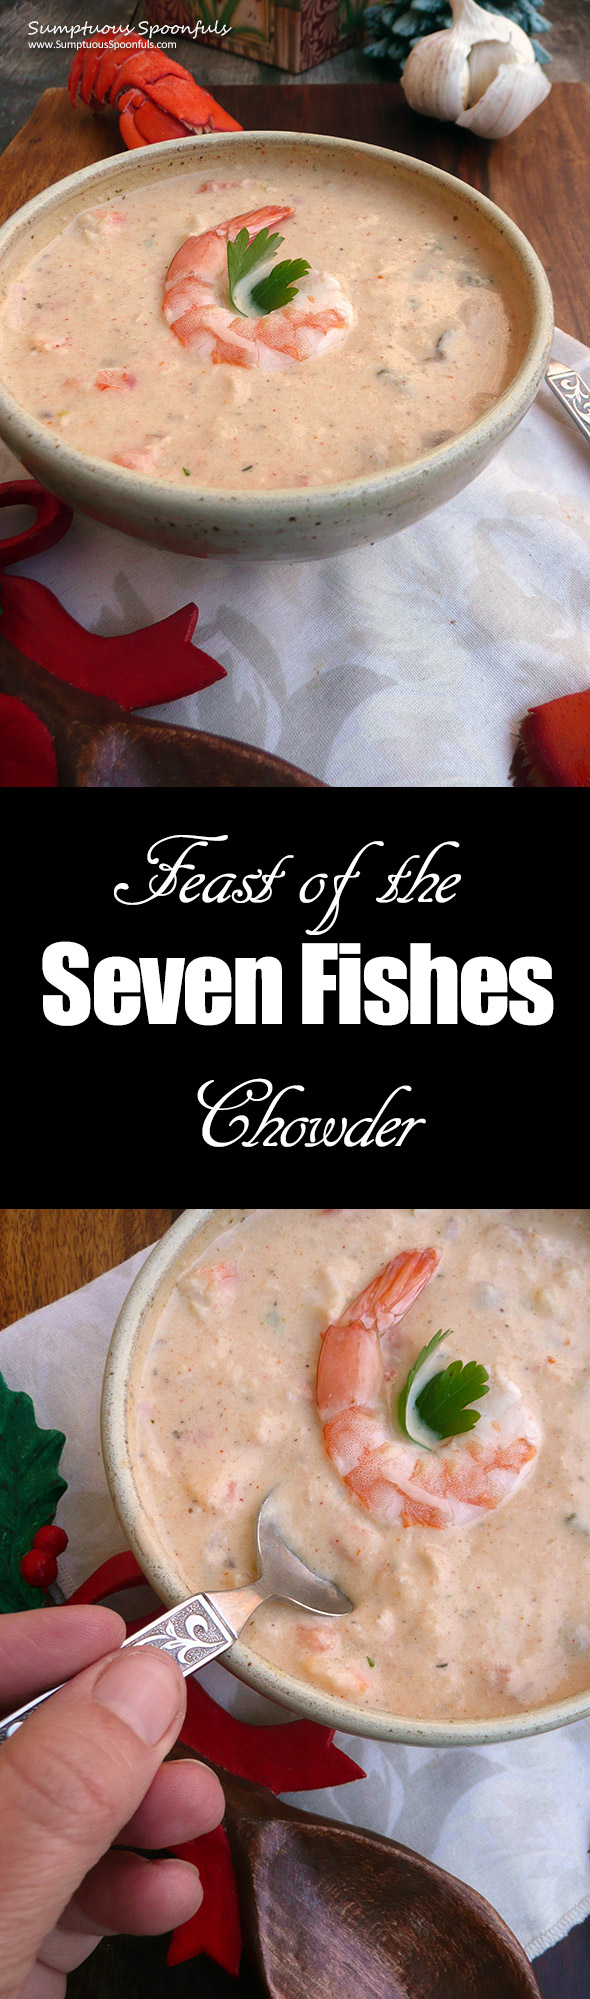 Feast of the seven fishes chowder sumptuous spoonfuls for Seven fishes recipe